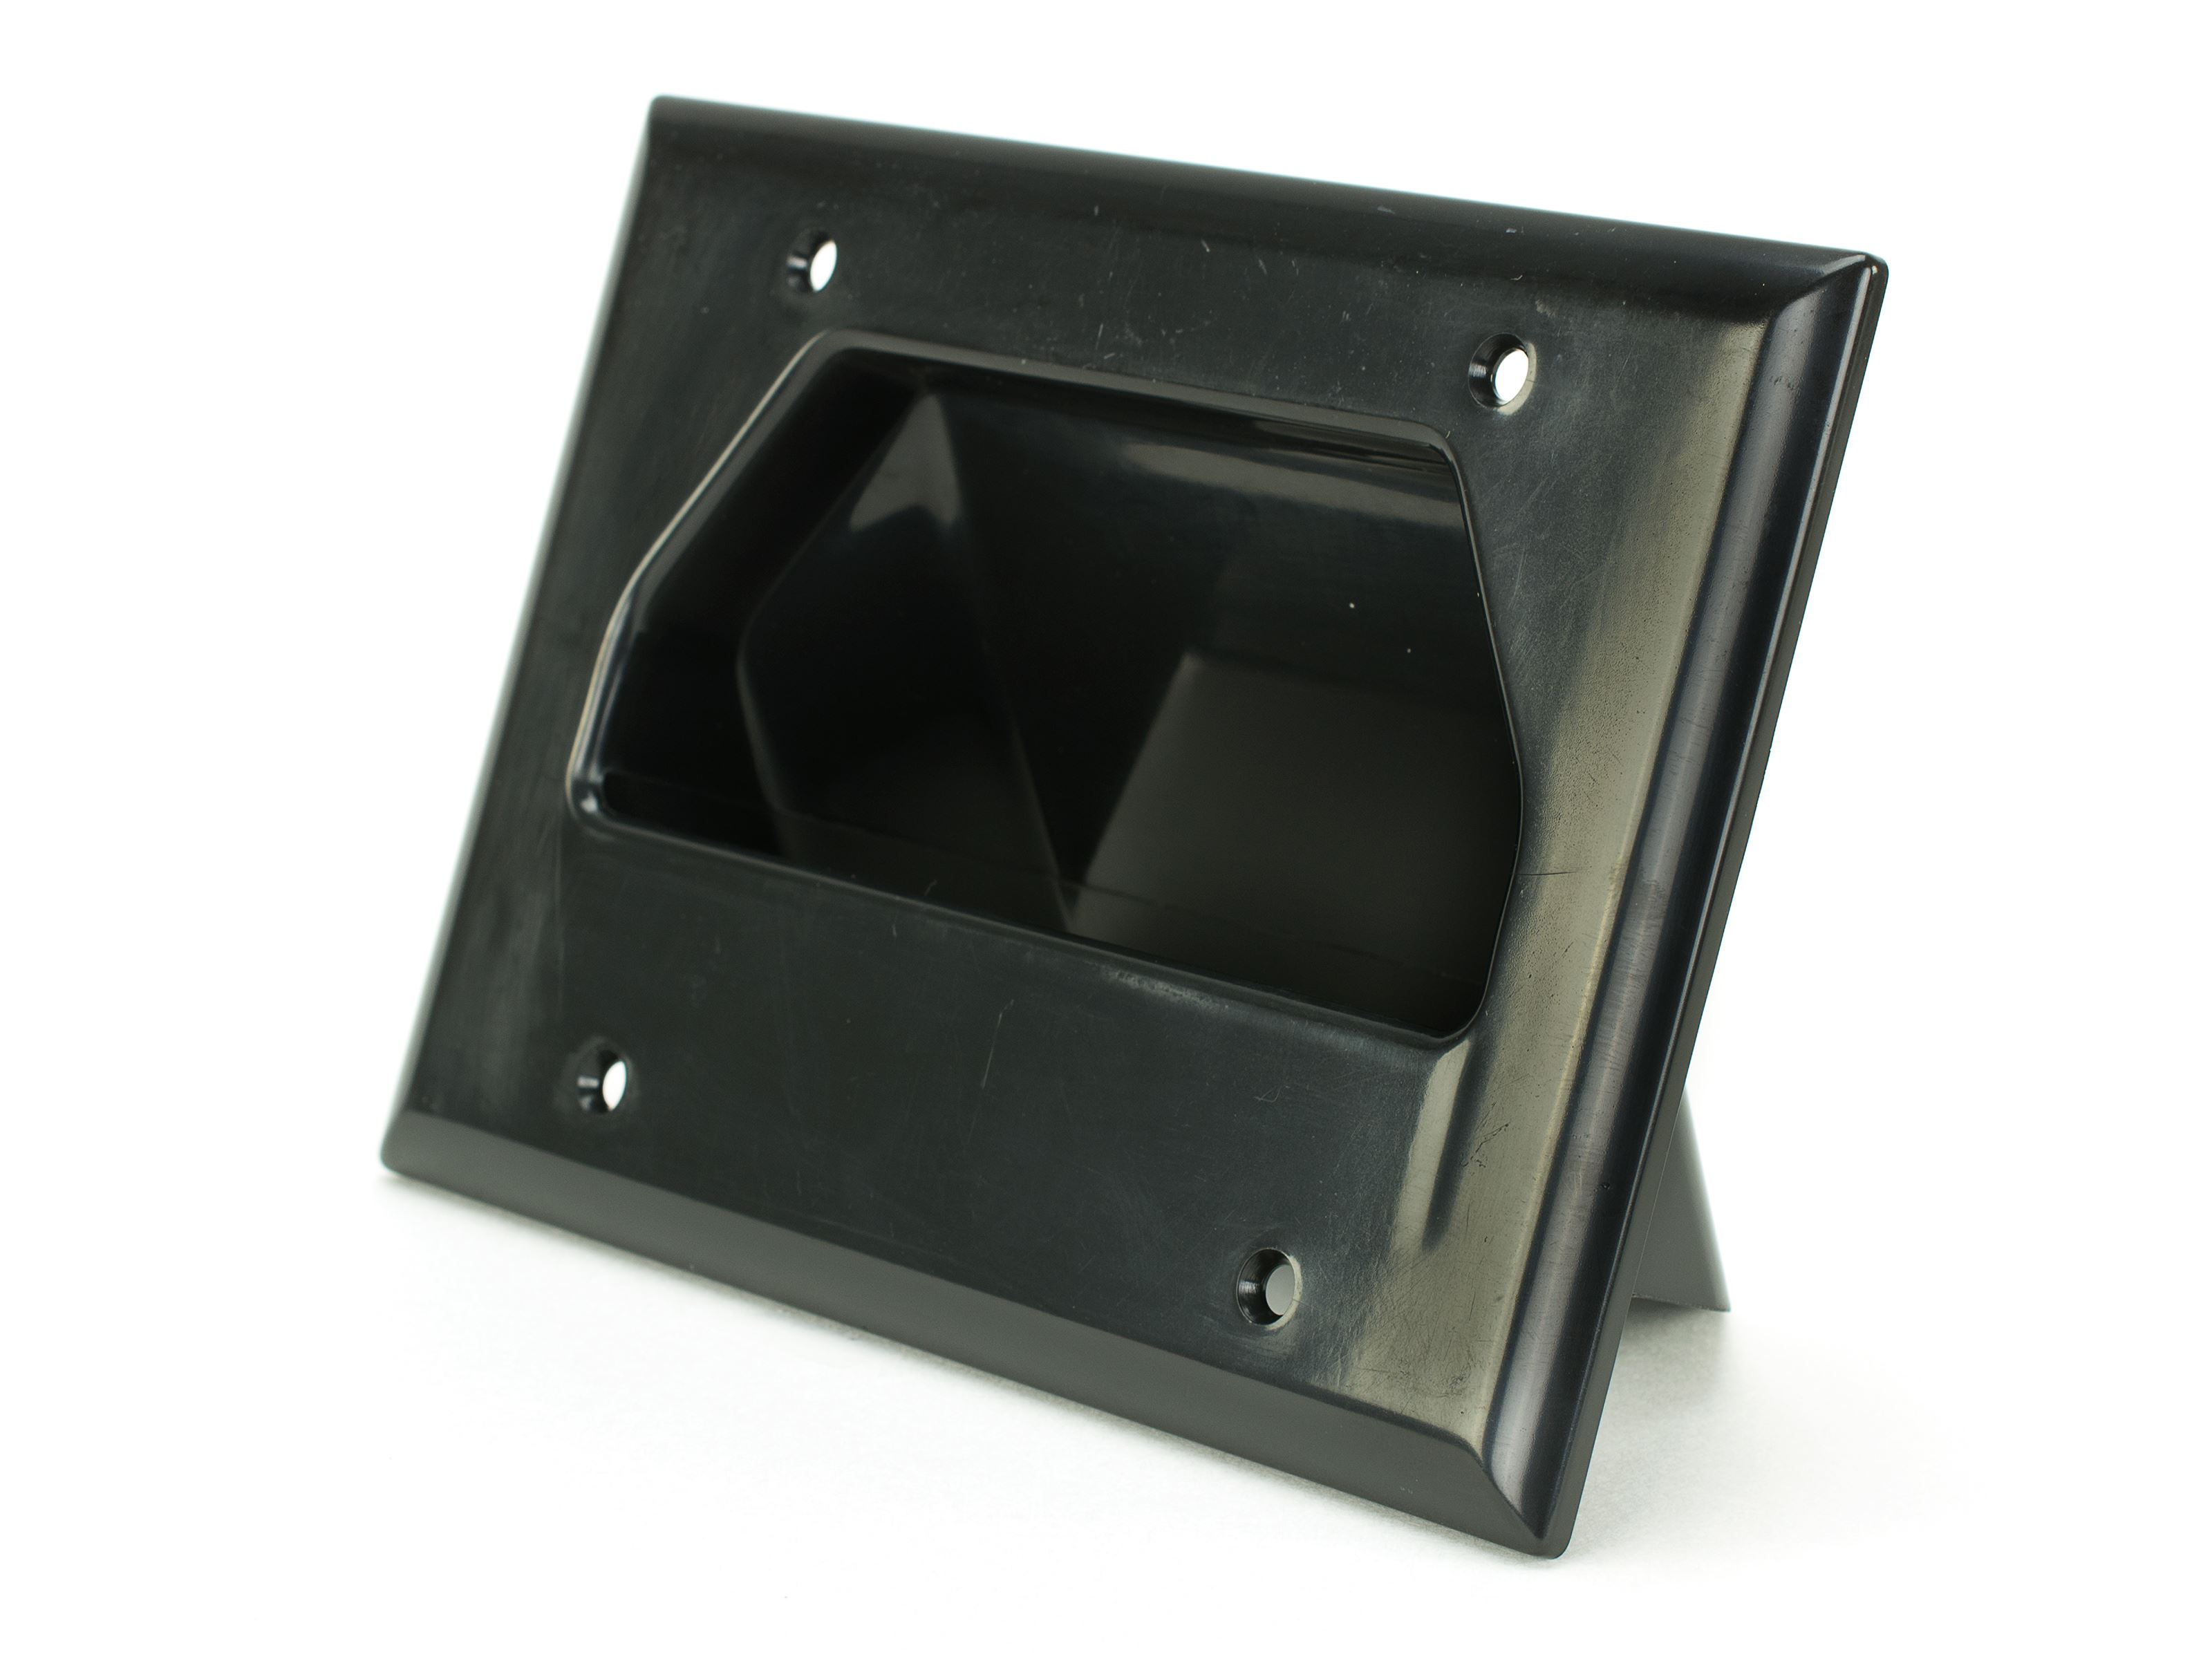 Recessed Wall Plate Scoop Black 3 Gang Computer Cable